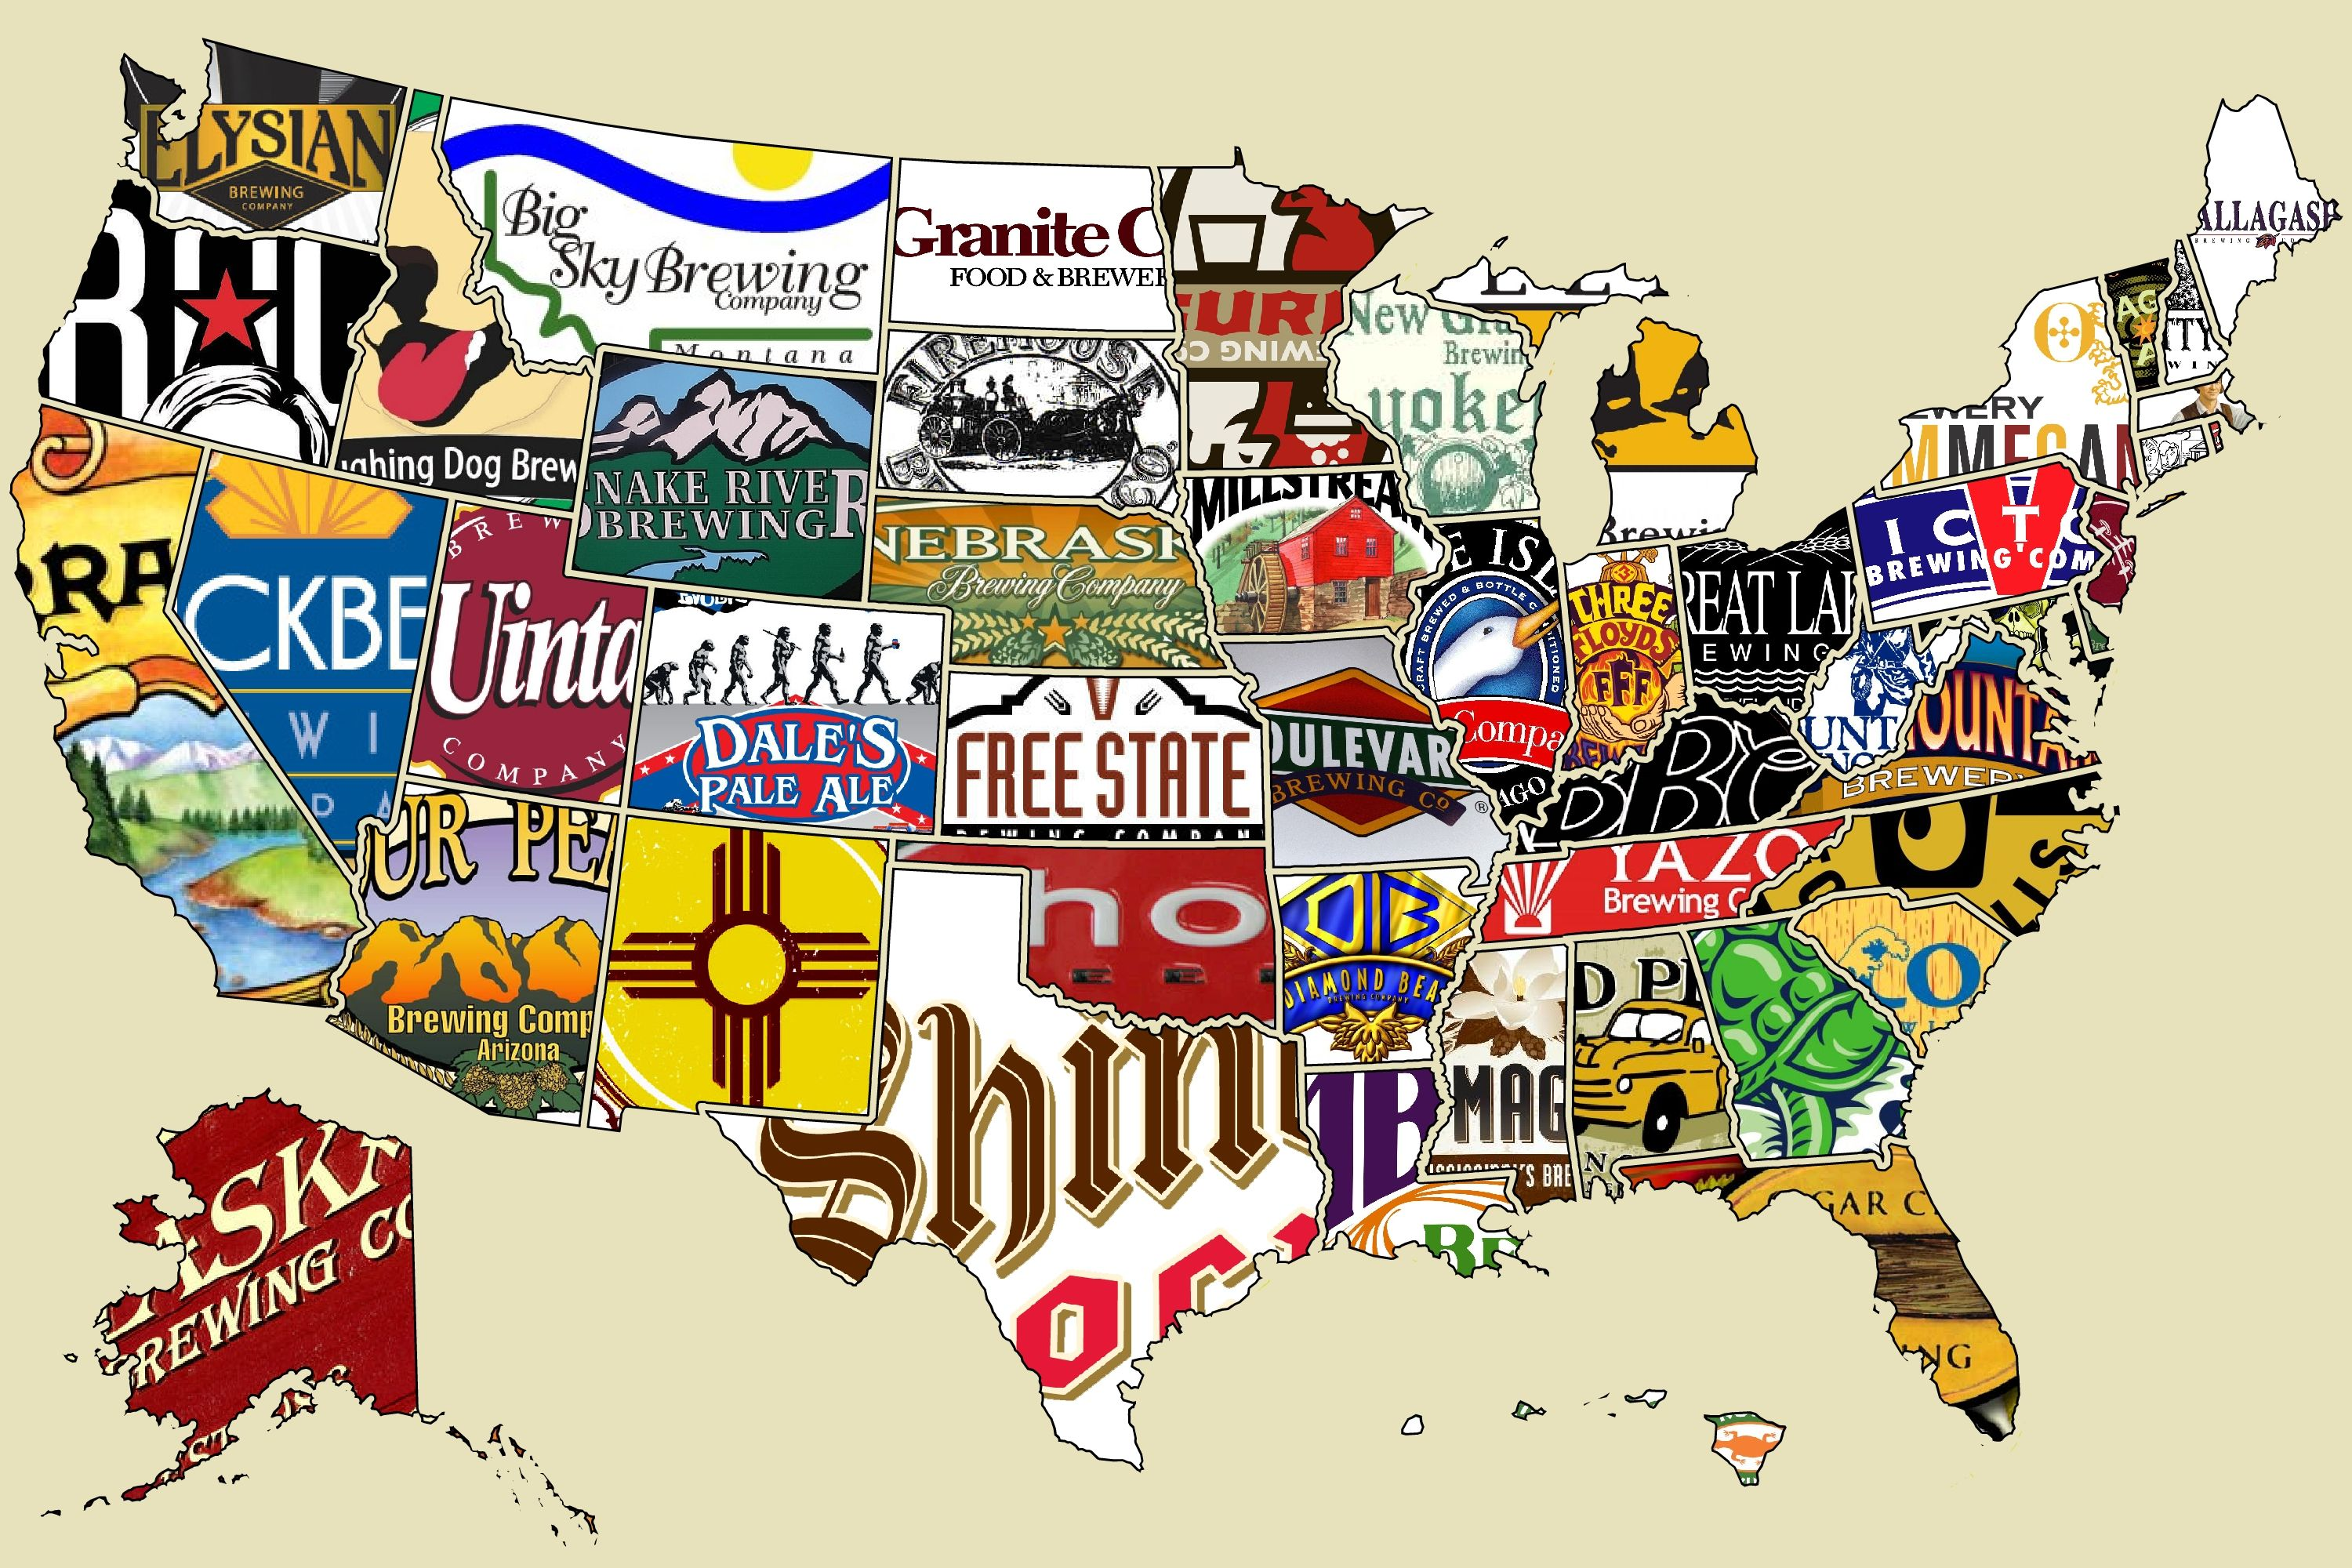 united states beer map Great map of beer per state. I can confirm that Four Peaks is the